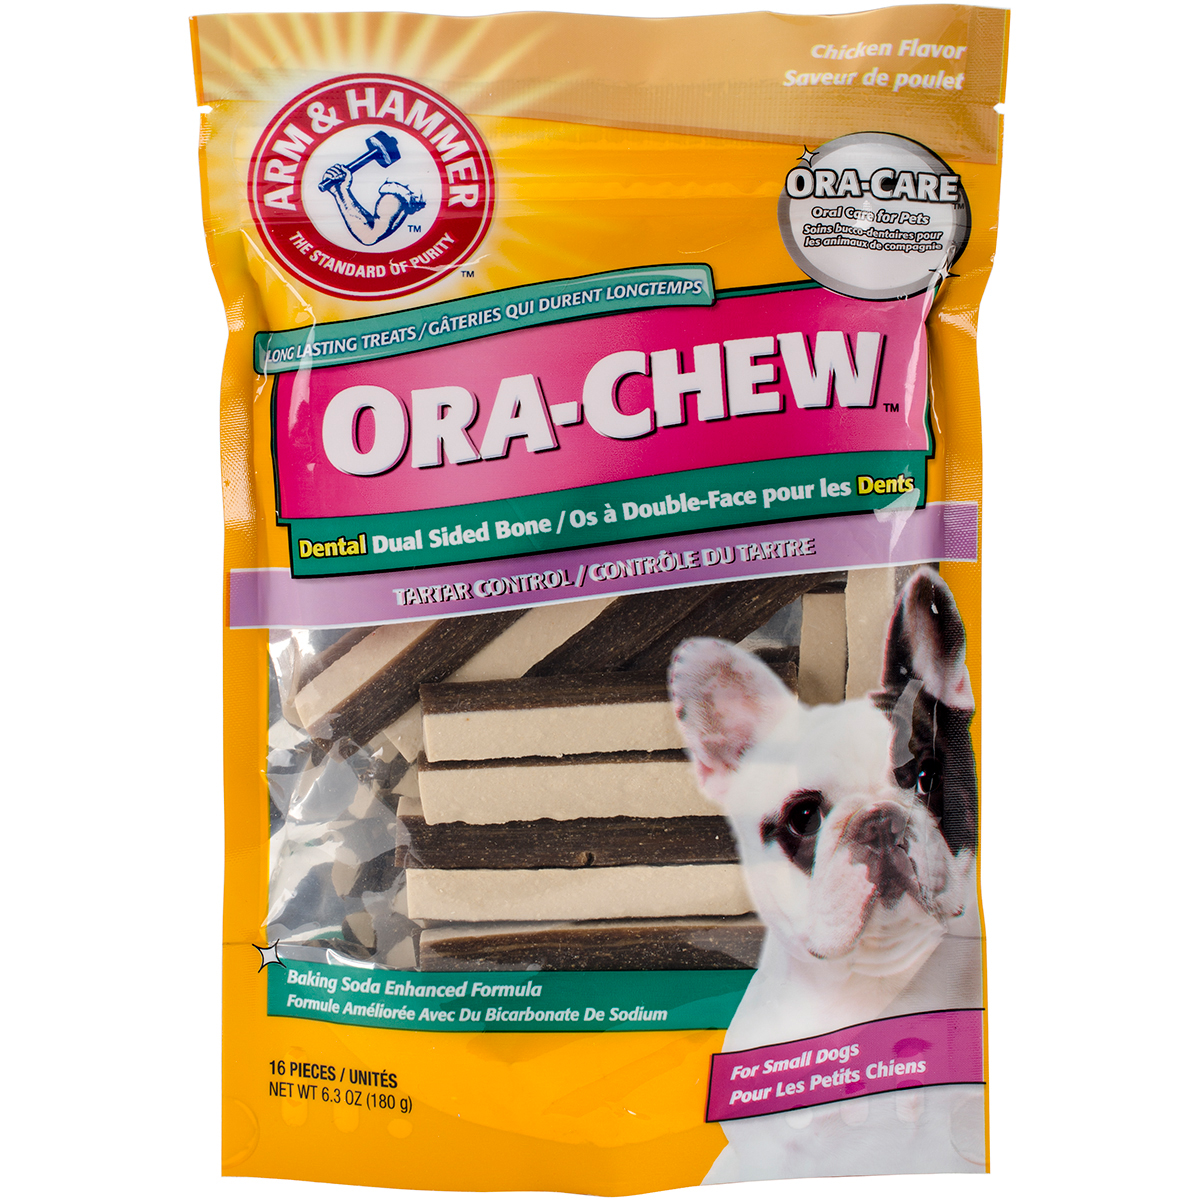 Arm & Hammer Dual-Sided Bone Treat-Small Dog